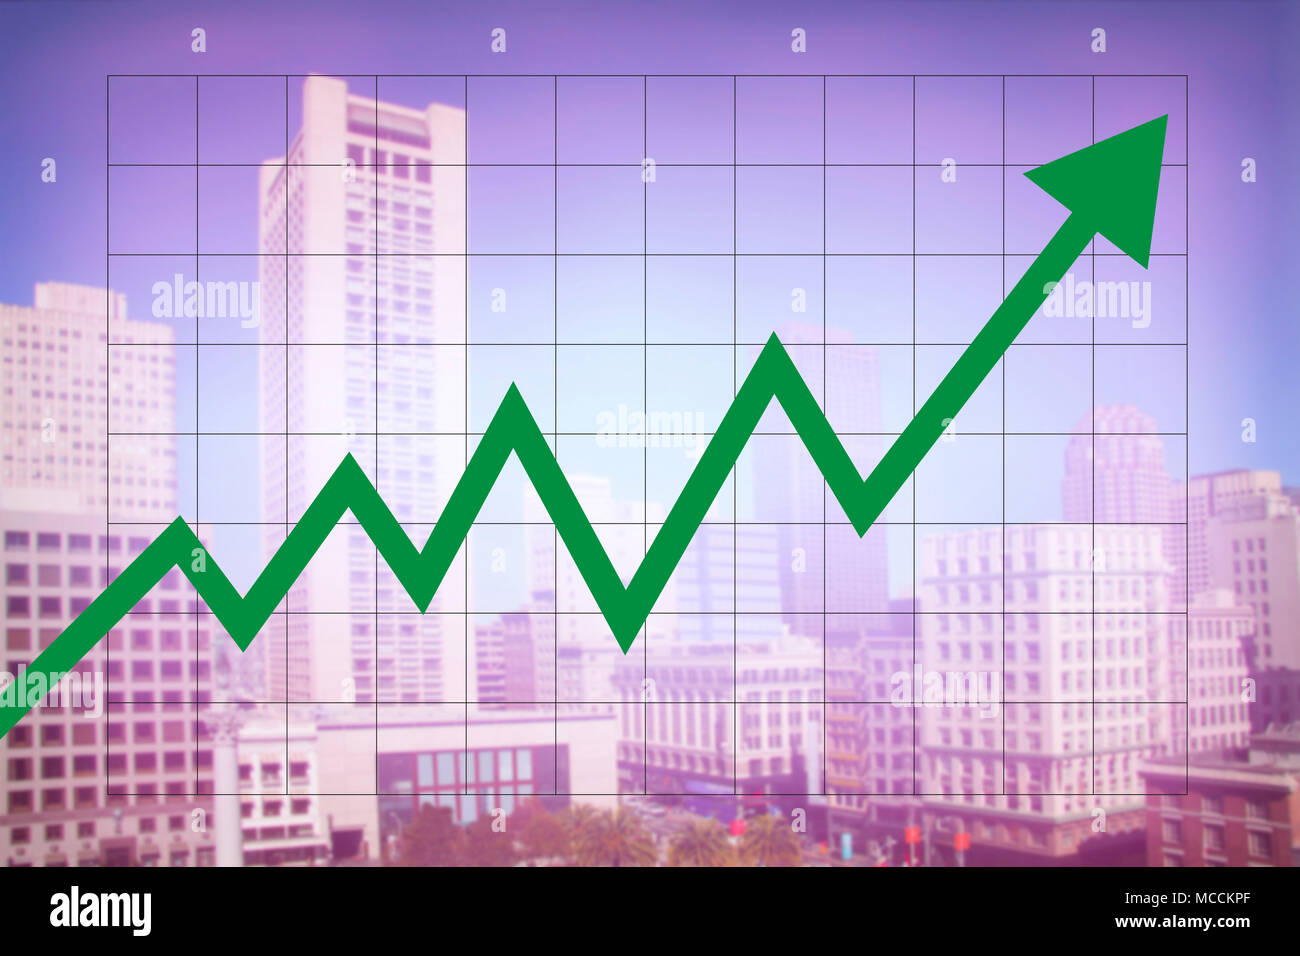 Real estate market economy with increasing graph and green arrow going up with colorful blurred cityscape background - Stock Image